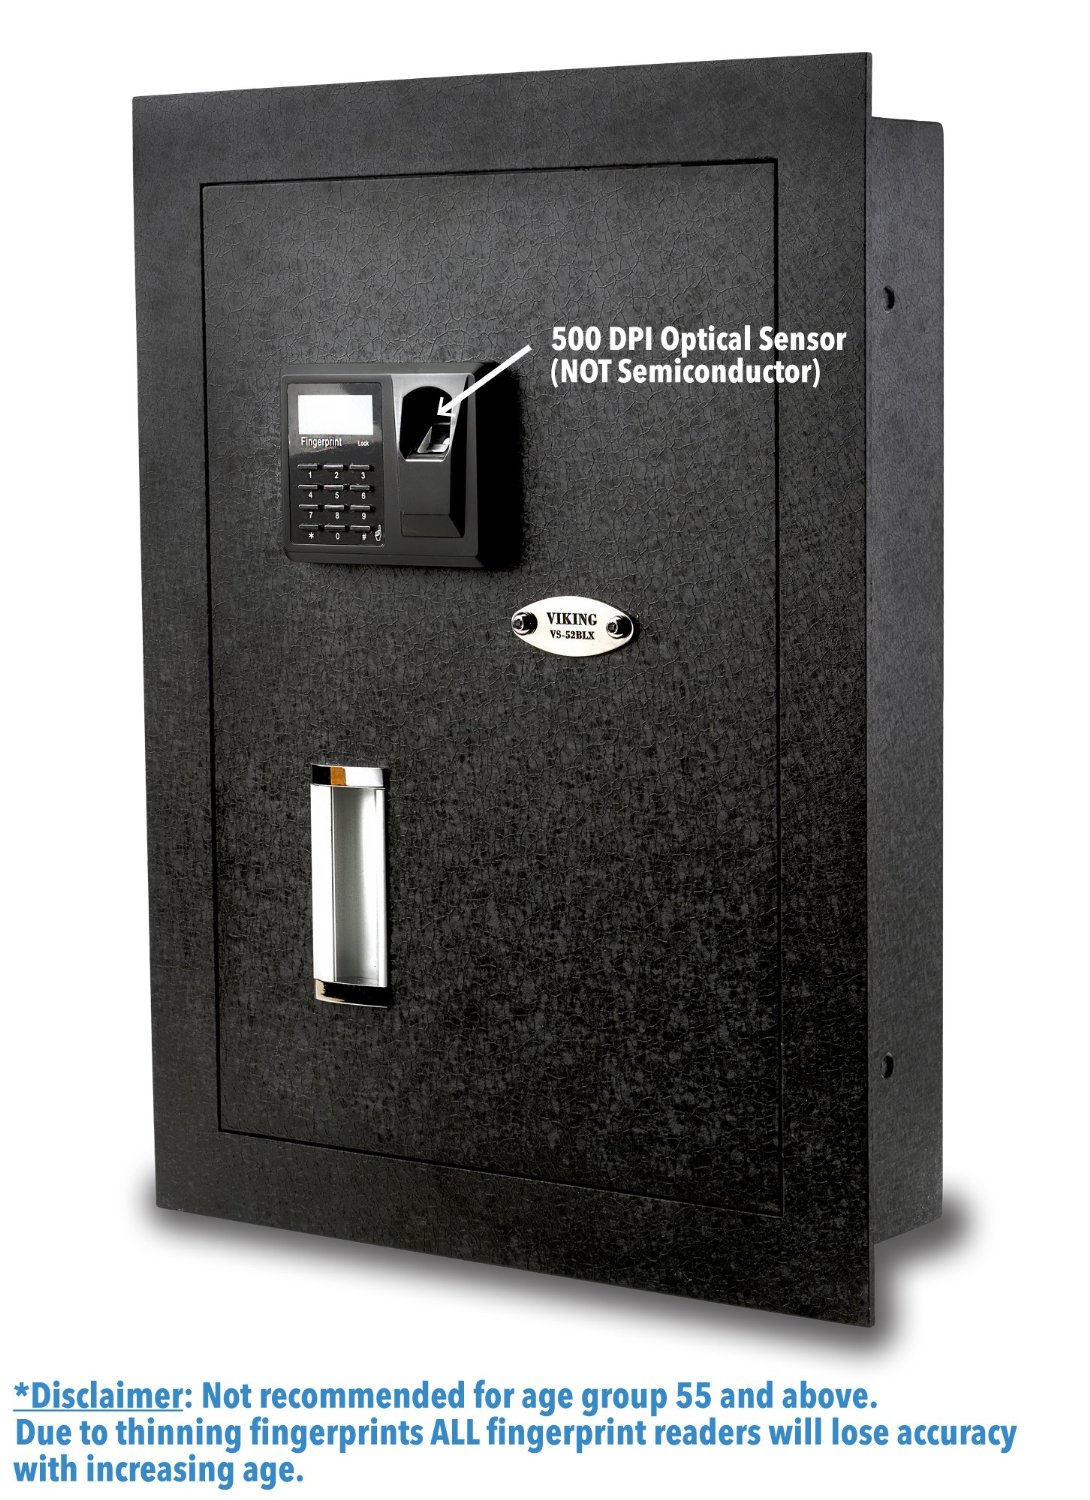 Viking Security Safe VS-52BLX Biometric Fingerprint Hidden Wall Safe seen here. it is one of the 5th best hidden gun safes